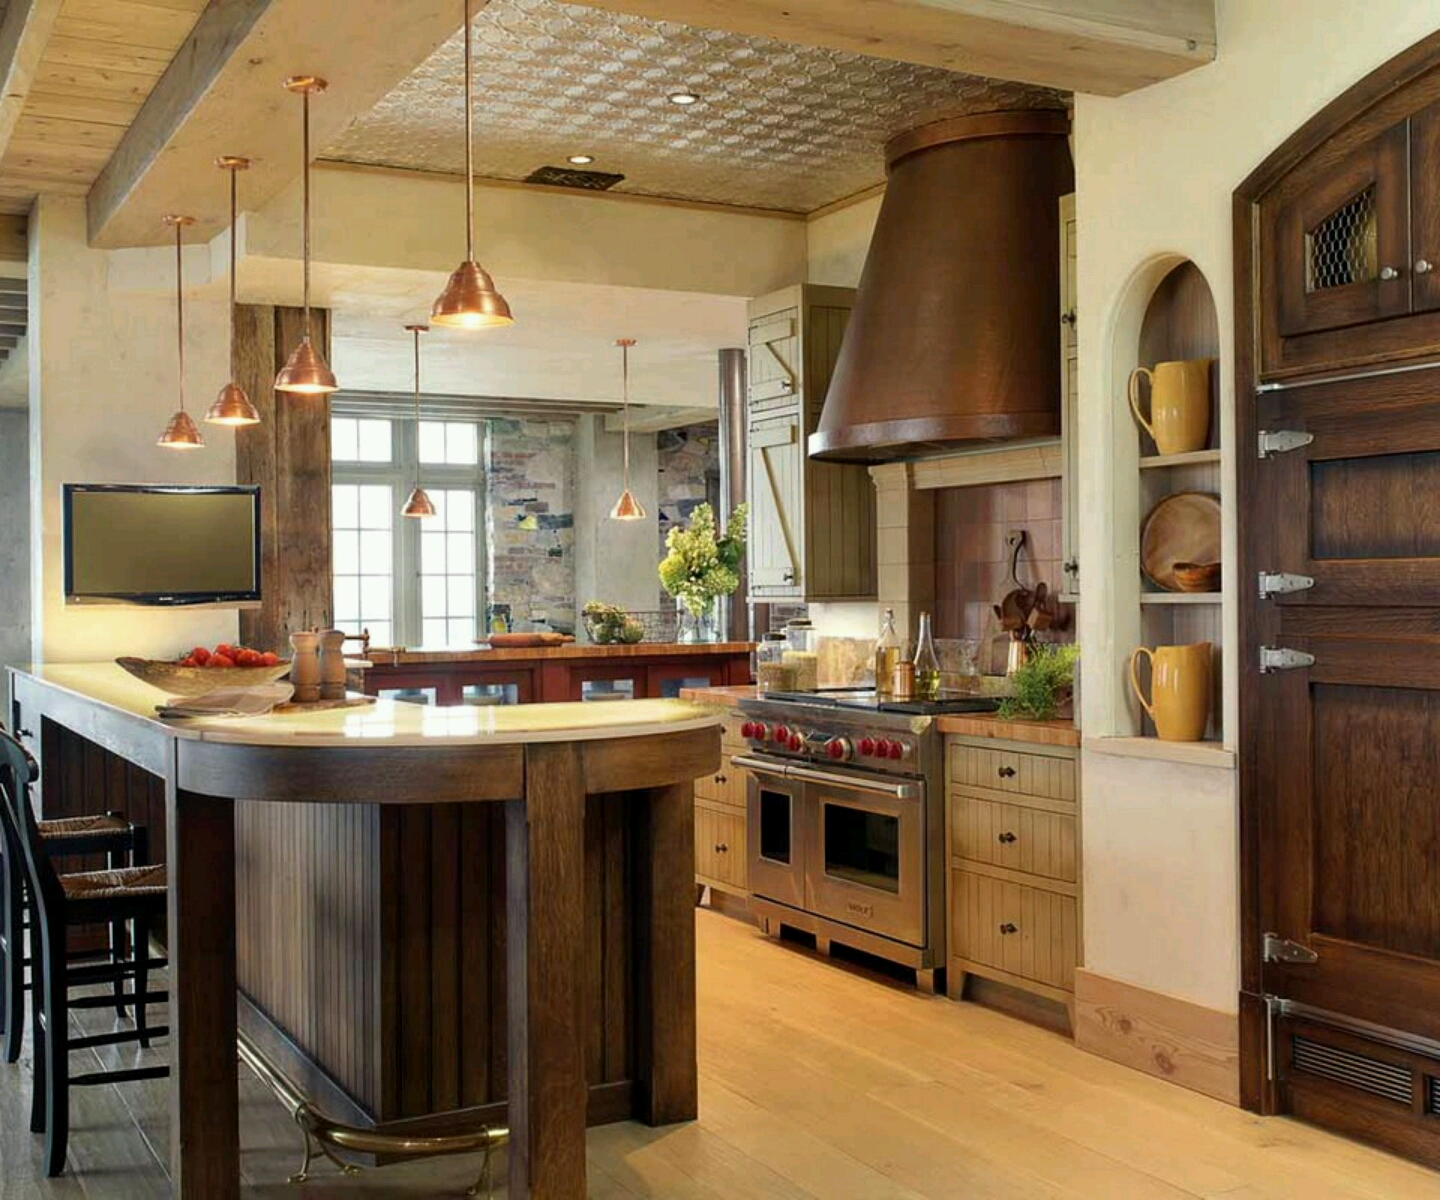 New Kitchen Cabinet Ideas New Home Designs Latest Modern Home Kitchen Cabinet